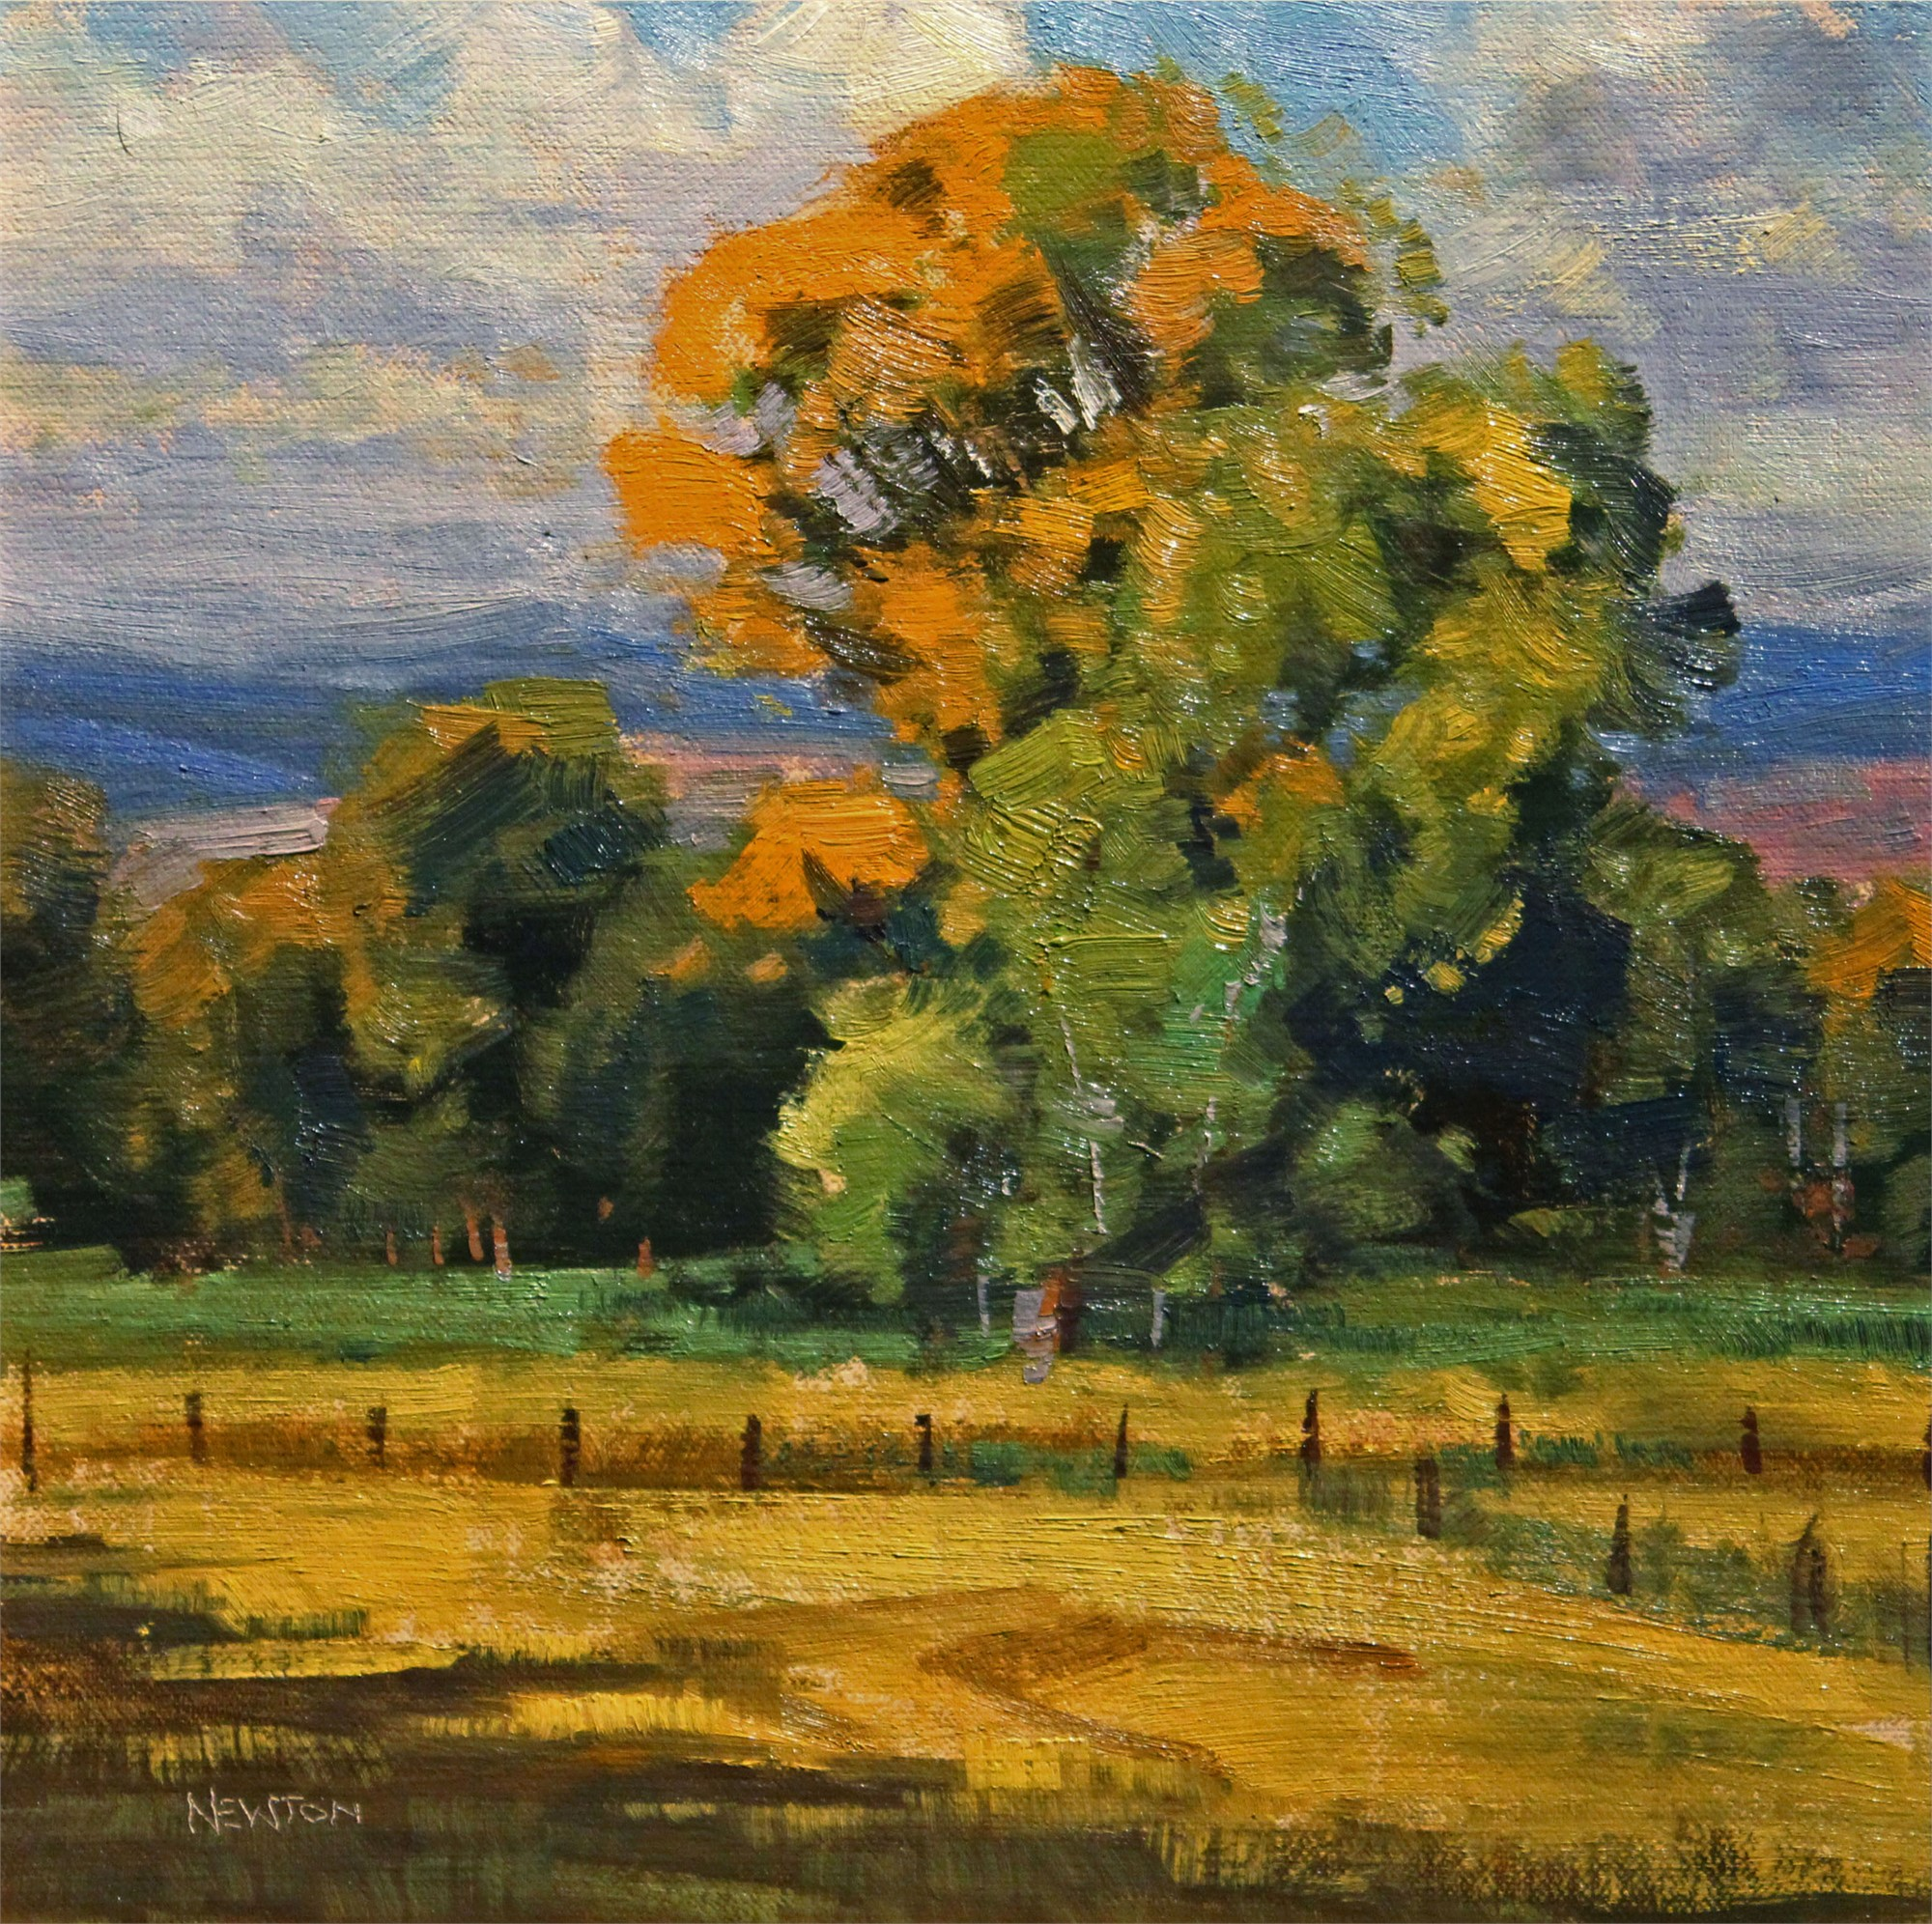 Cottonwood in September by Wes Newton